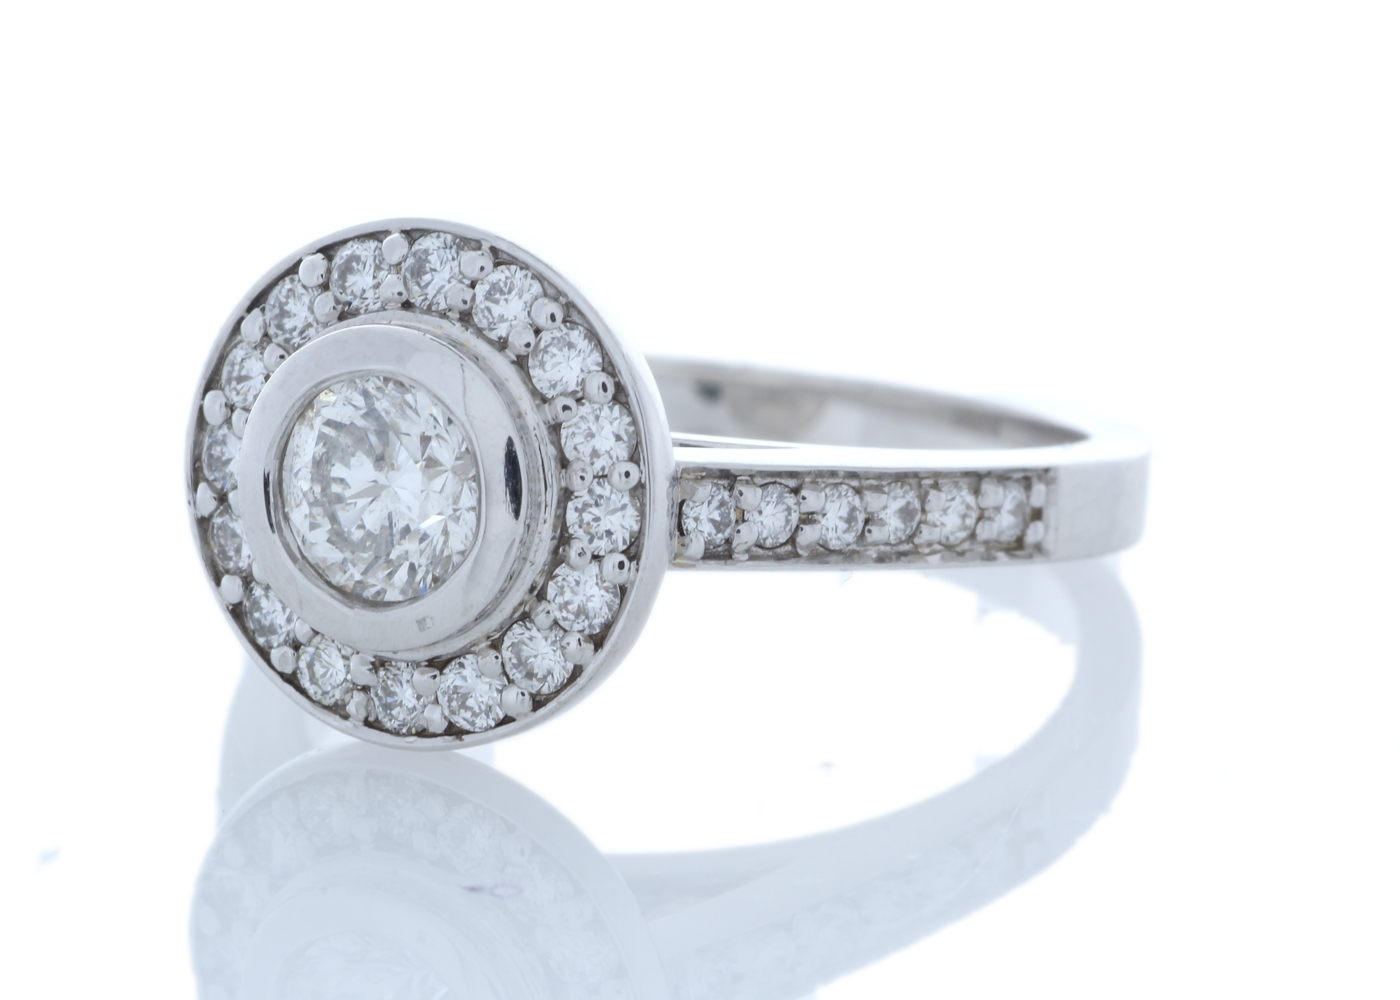 18ct White Gold Single Stone With Halo Setting Ring (0.50) 1.00 Carats - Image 4 of 6